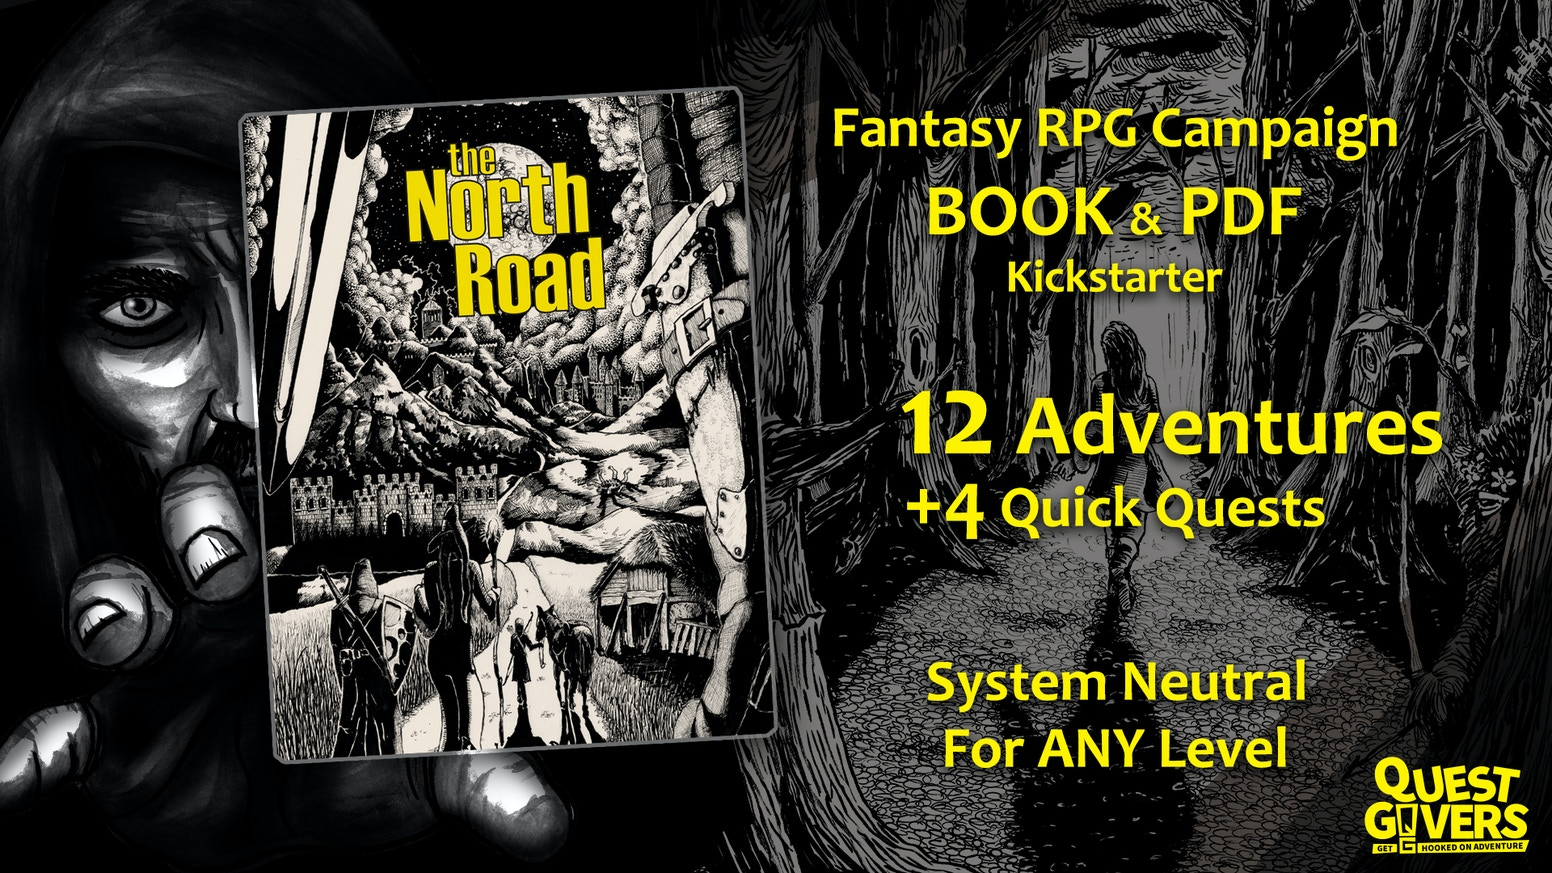 An RPG system neutral fantasy role-playing adventure campaign BOOK and PDF of 12 modules and 4 additional quests. Fully Funded